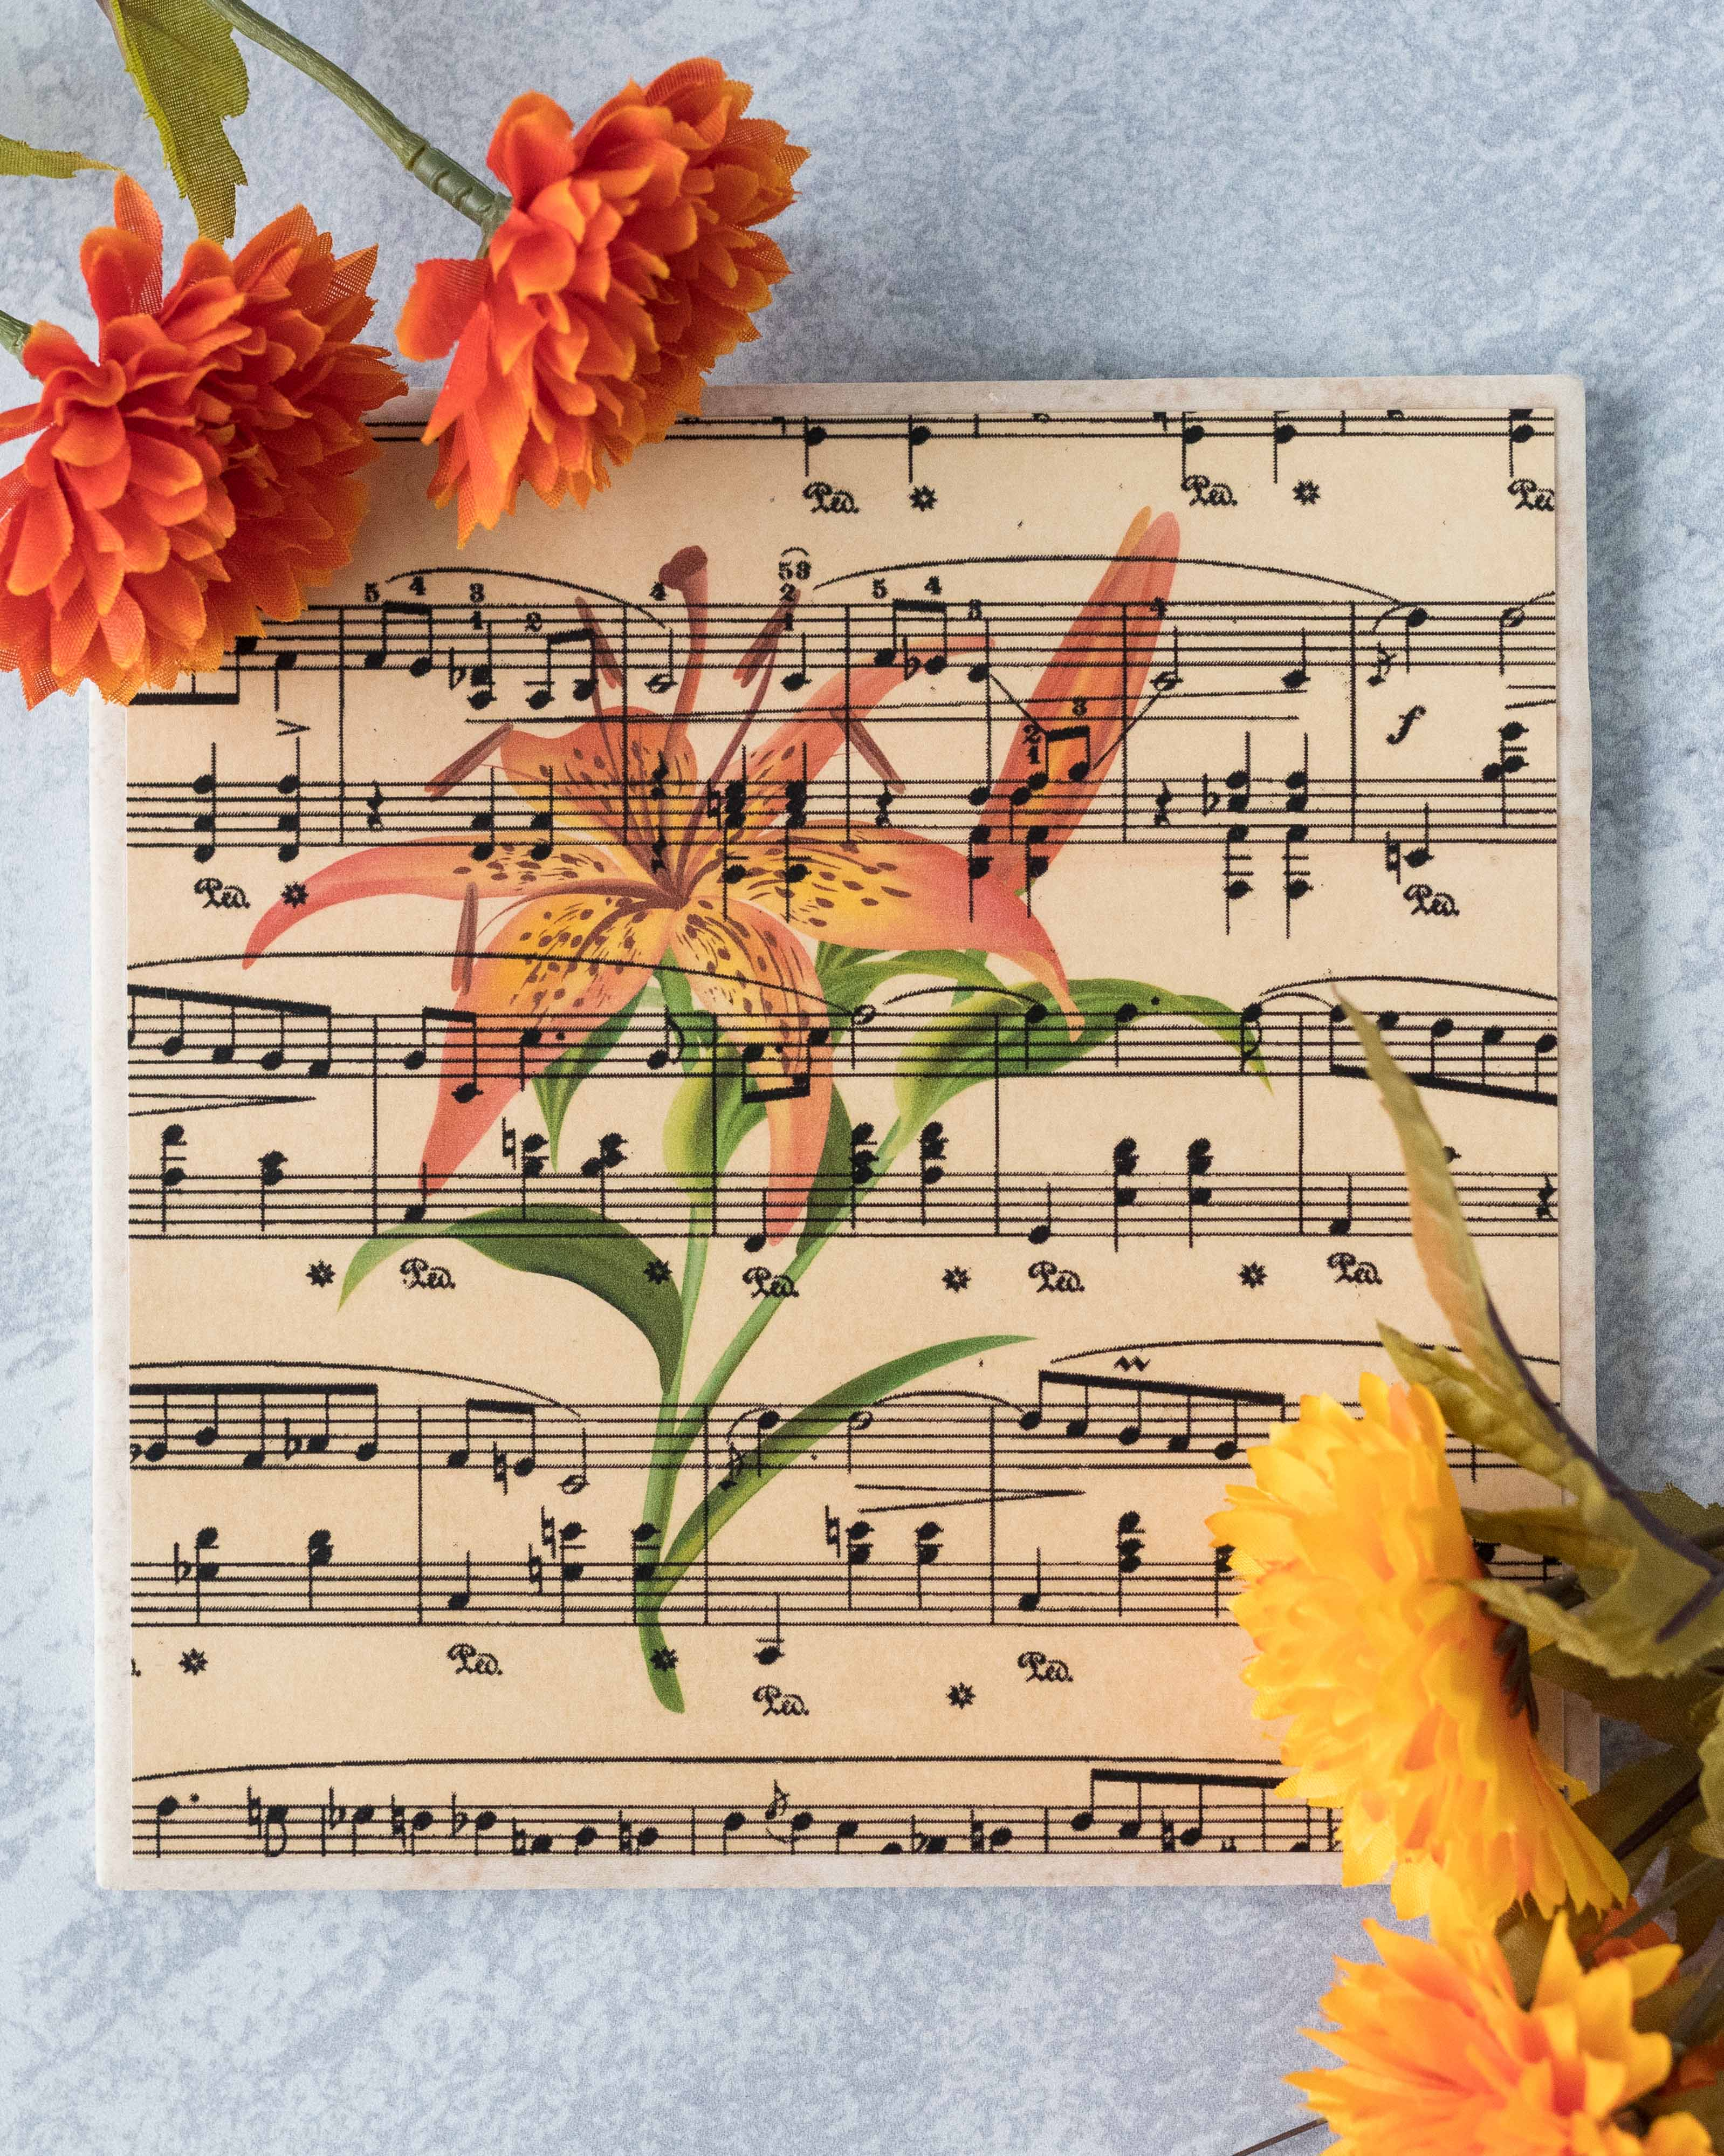 DIY antique sheet music tile with tiger lily. Such a simple, beautiful piece of handmade home decor! #DIY #sheetmusic #tigerlily | https://www.roseclearfield.com